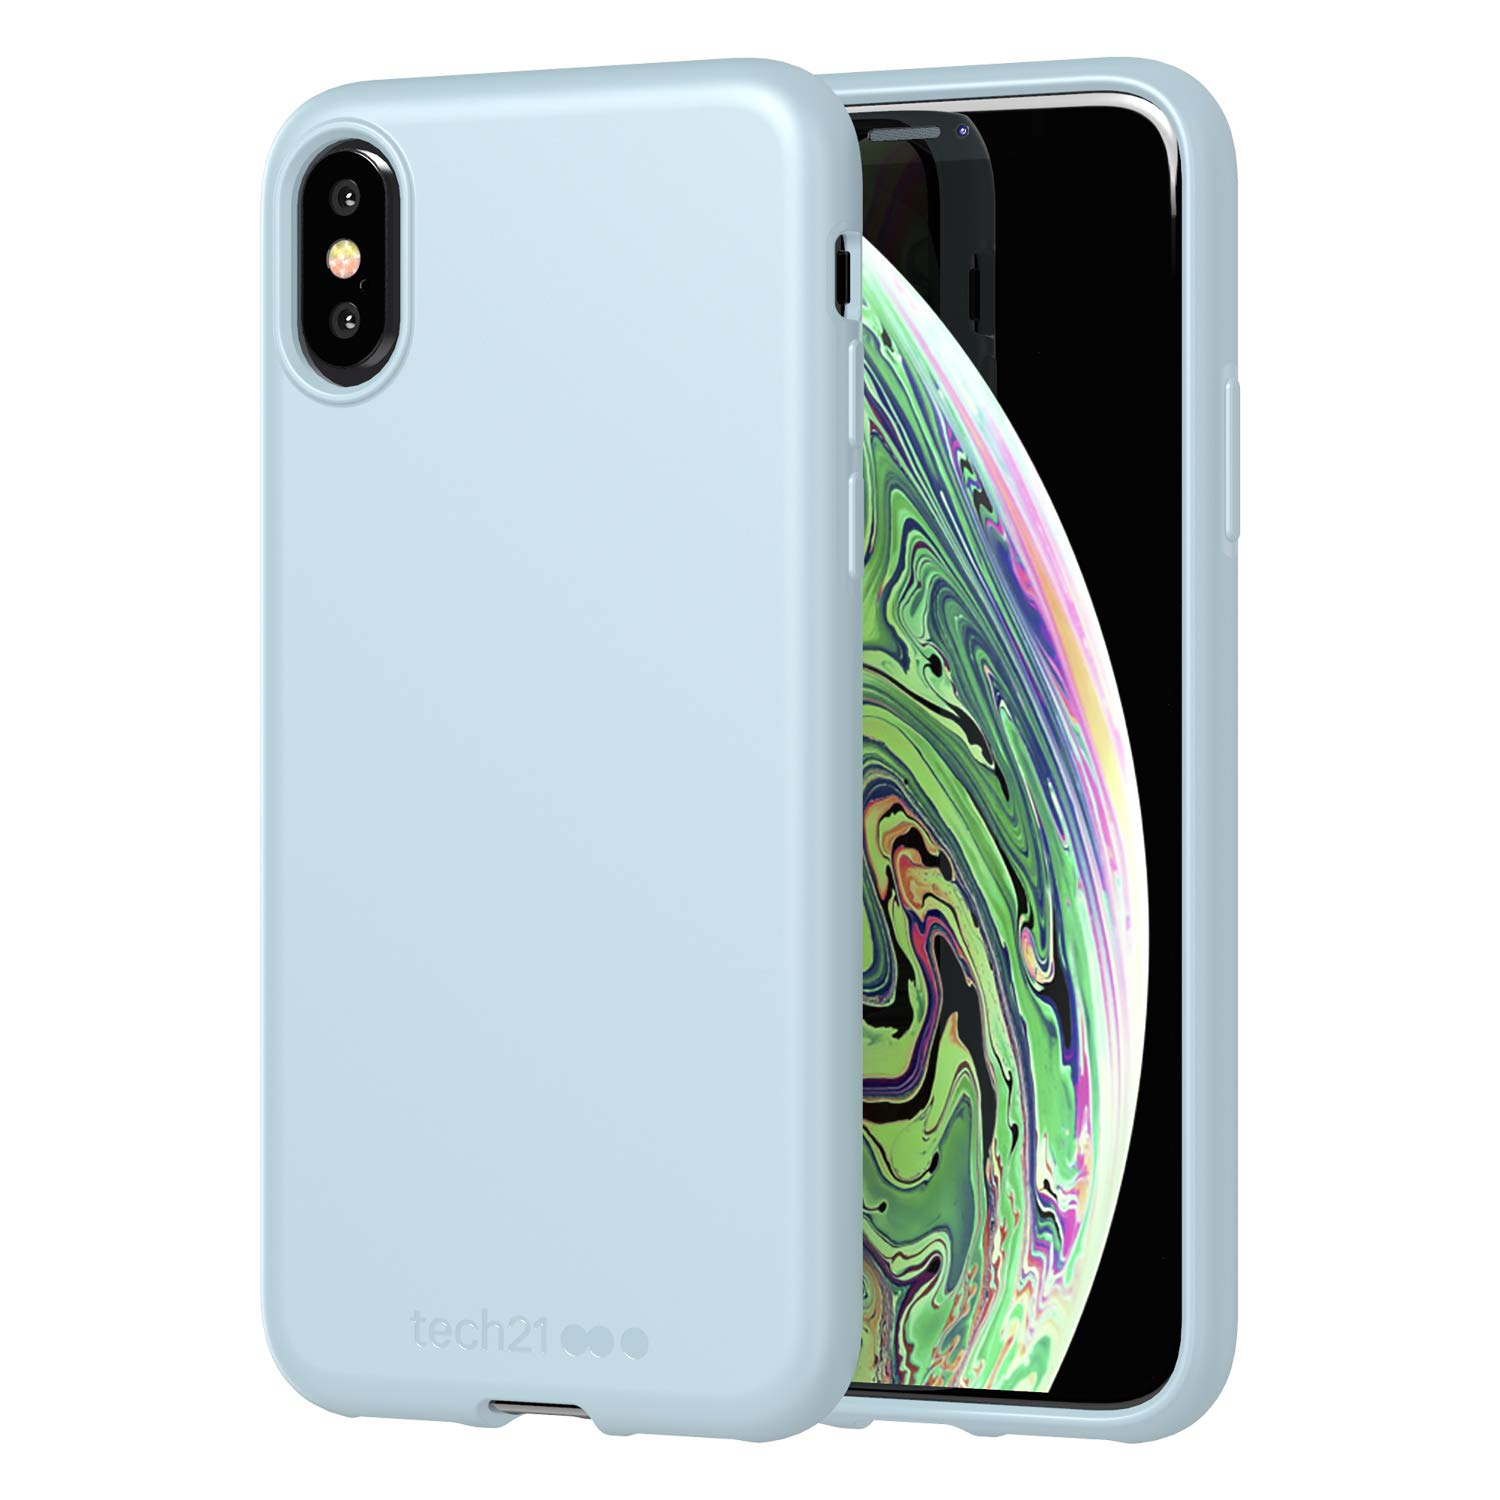 san francisco 8565f bdd75 tech21 Studio Colour Phone Case, Compatible with Apple iPhone X/XS -  Protective Case with Antimicrobial Properties, Shark Blue